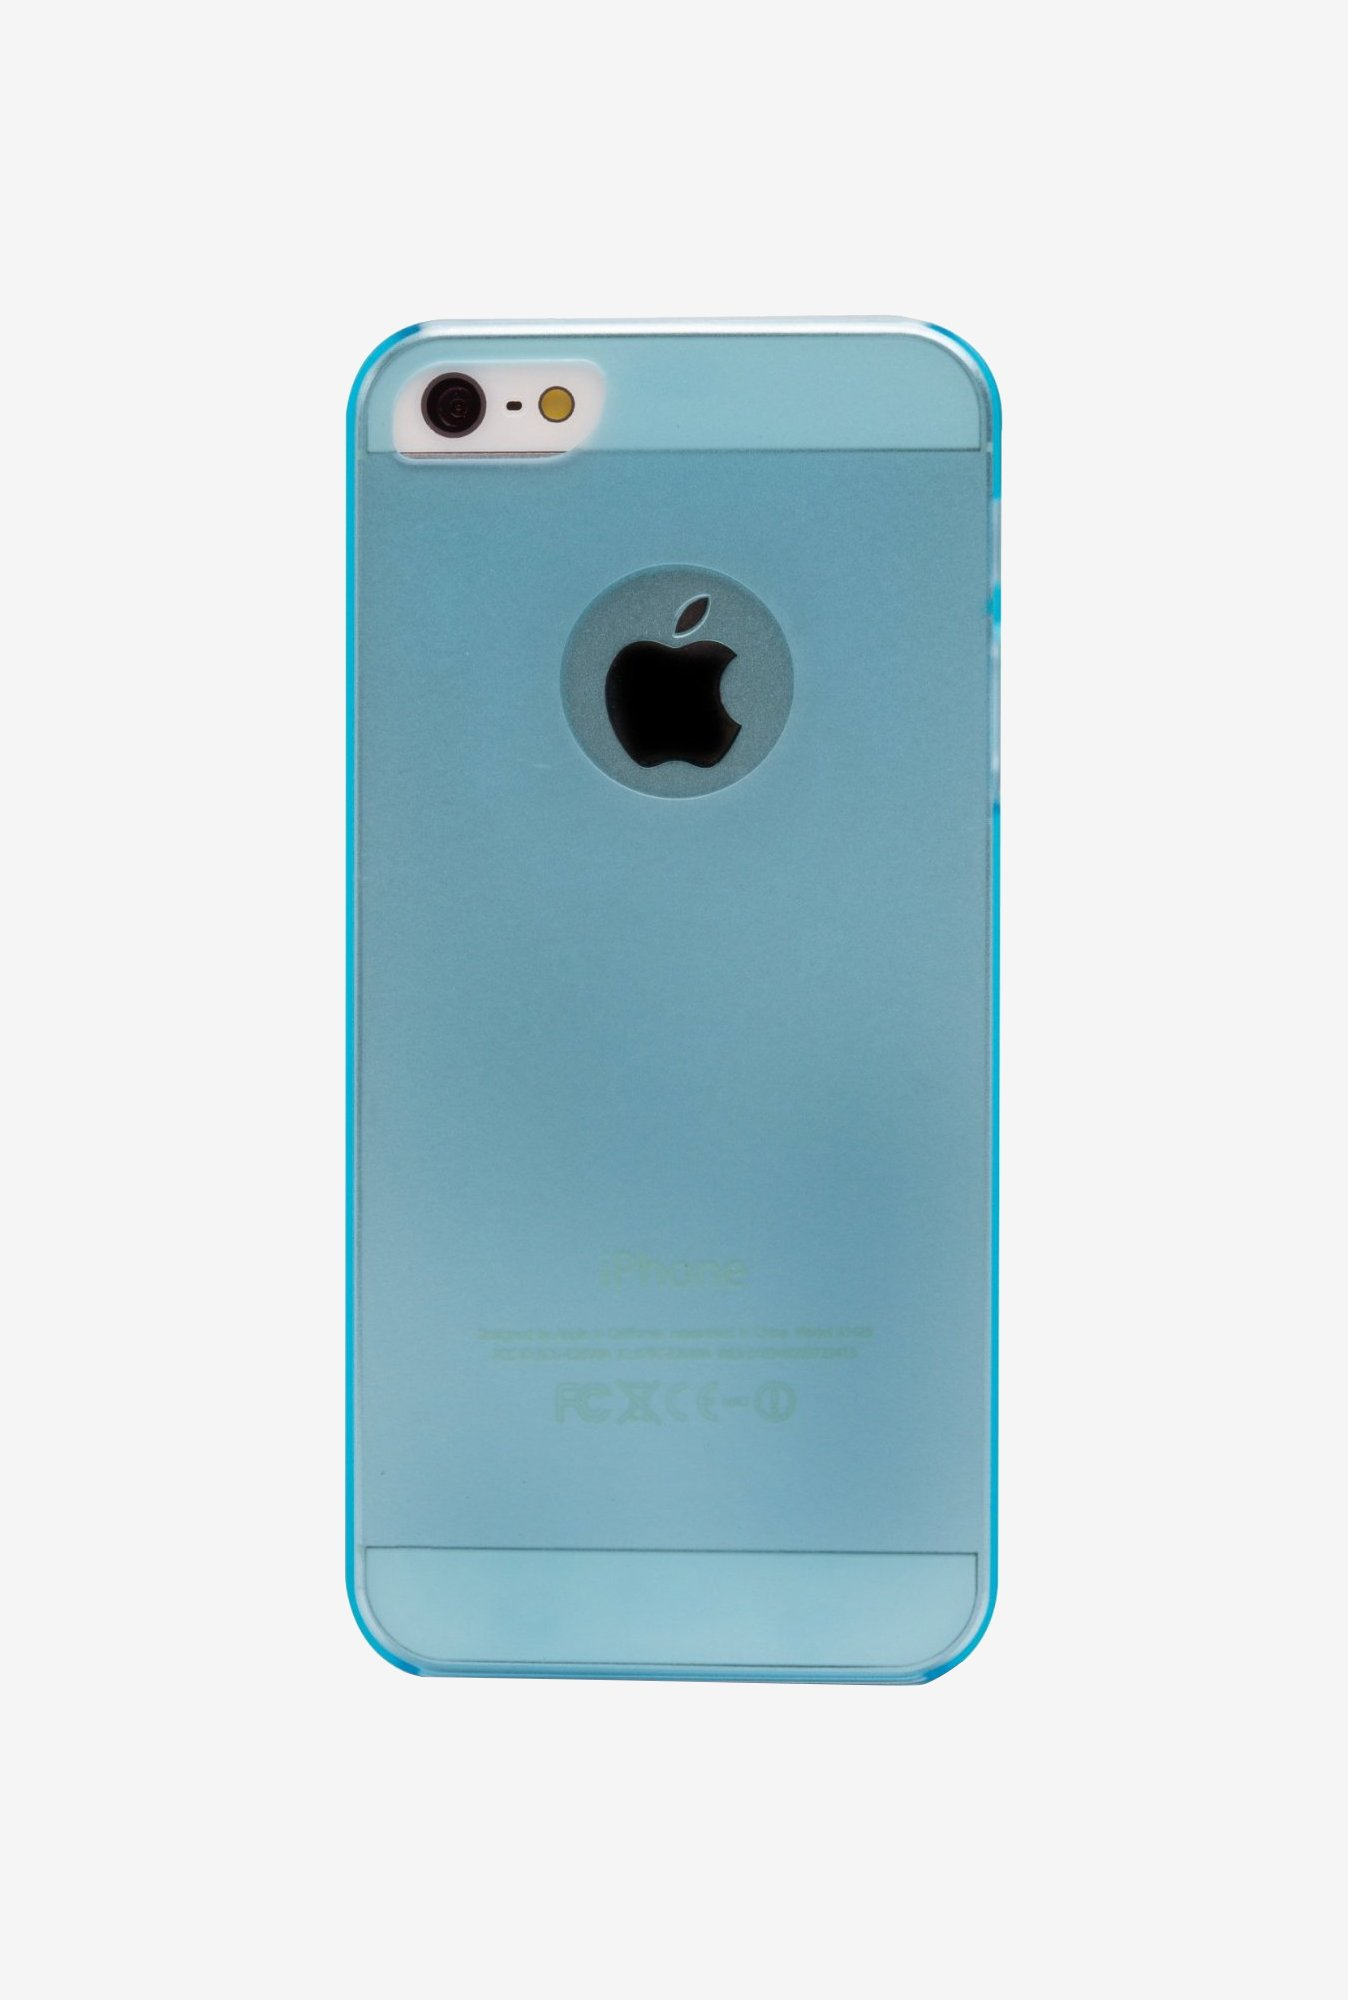 iAccy IP5021 Snap Case Blue for iPhone 5